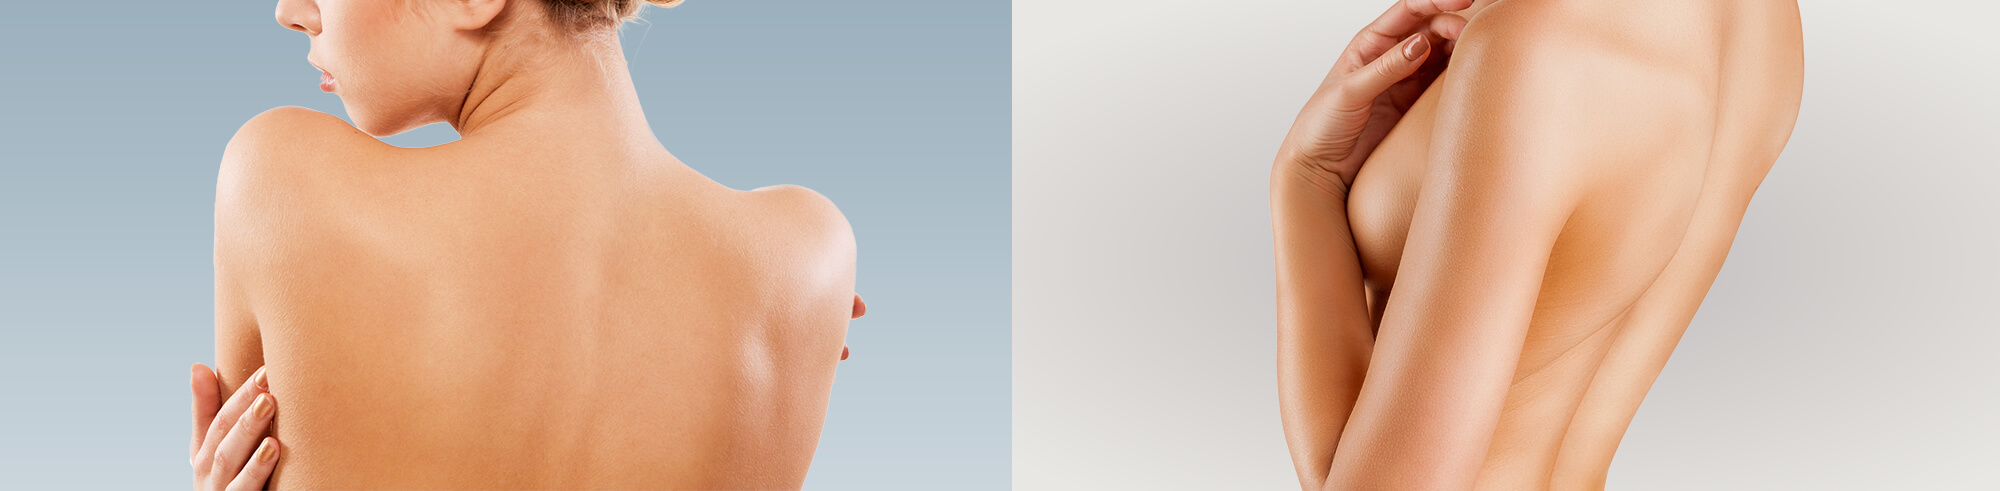 Liposuction And Back Lift